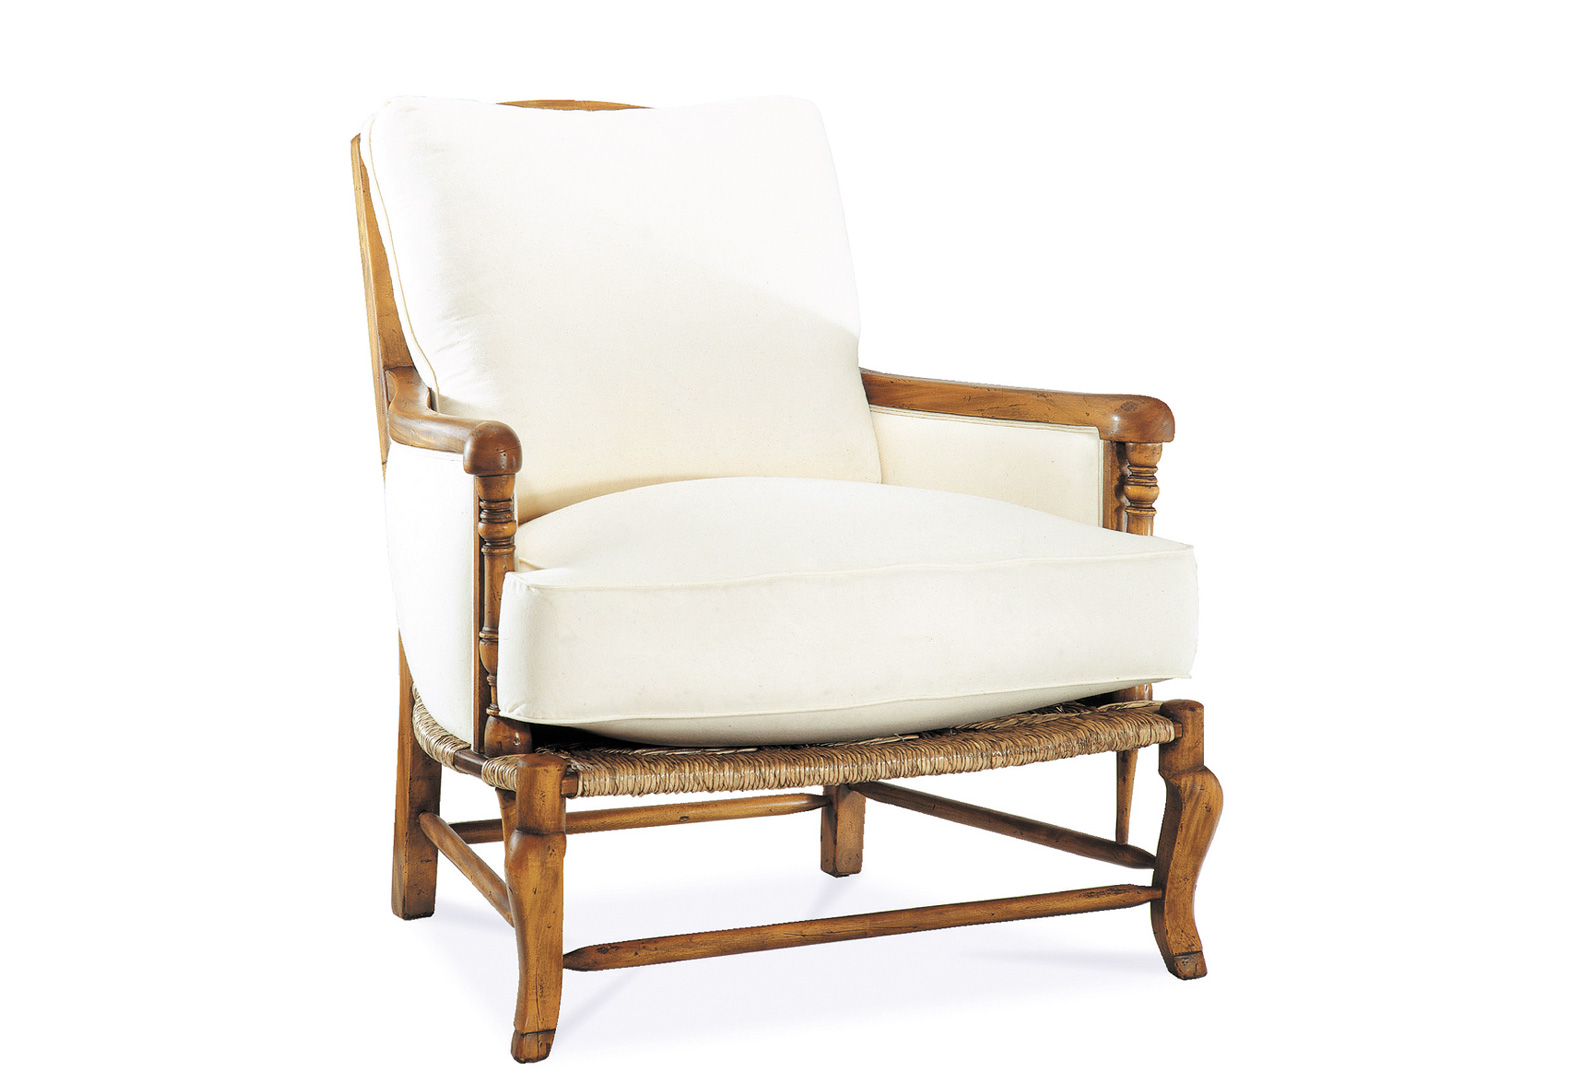 BORDEAUX CHAIR